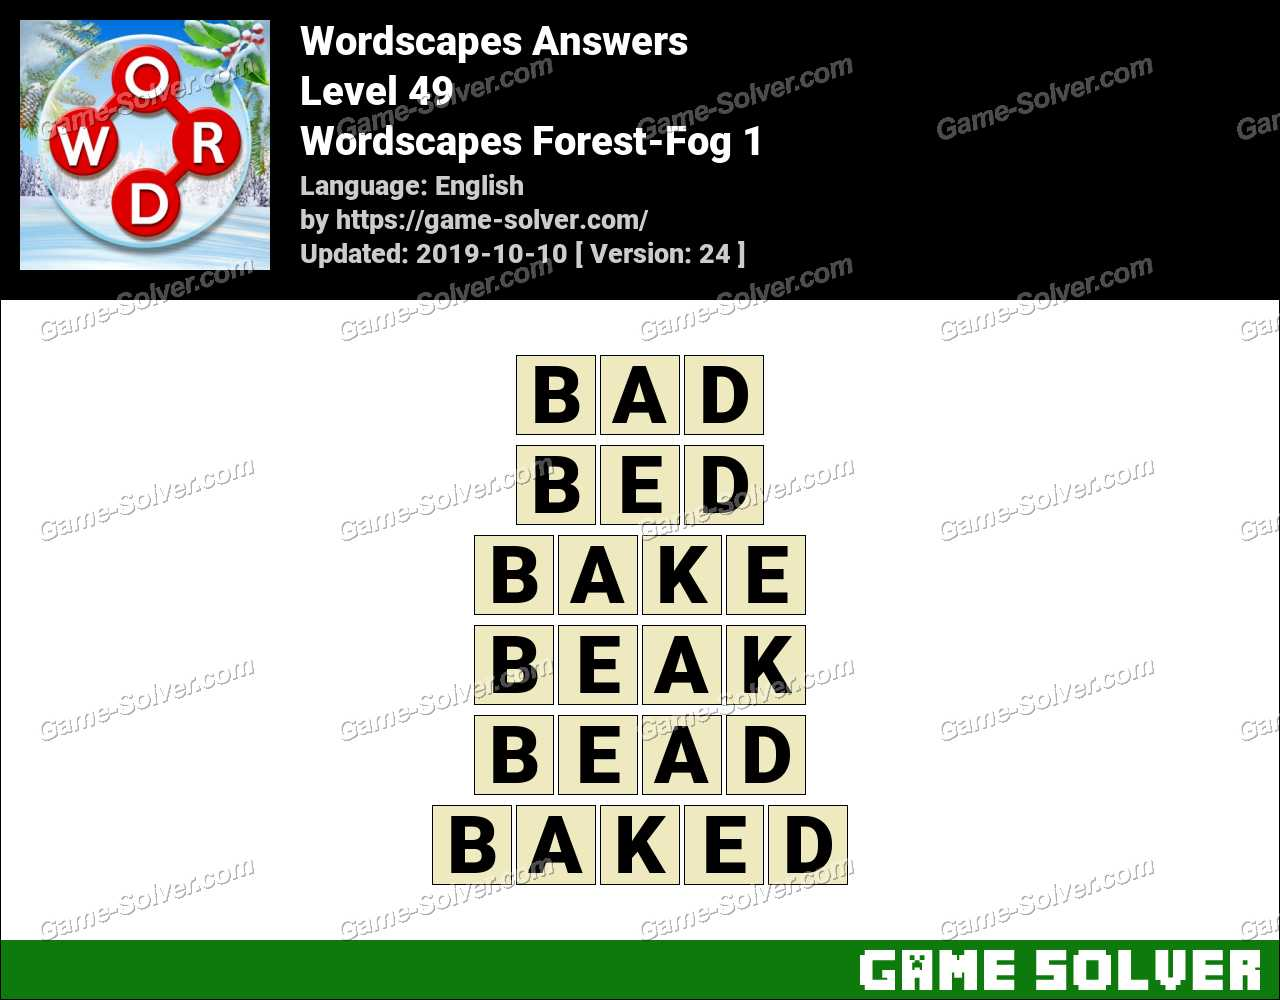 Wordscapes Forest-Fog 1 Answers